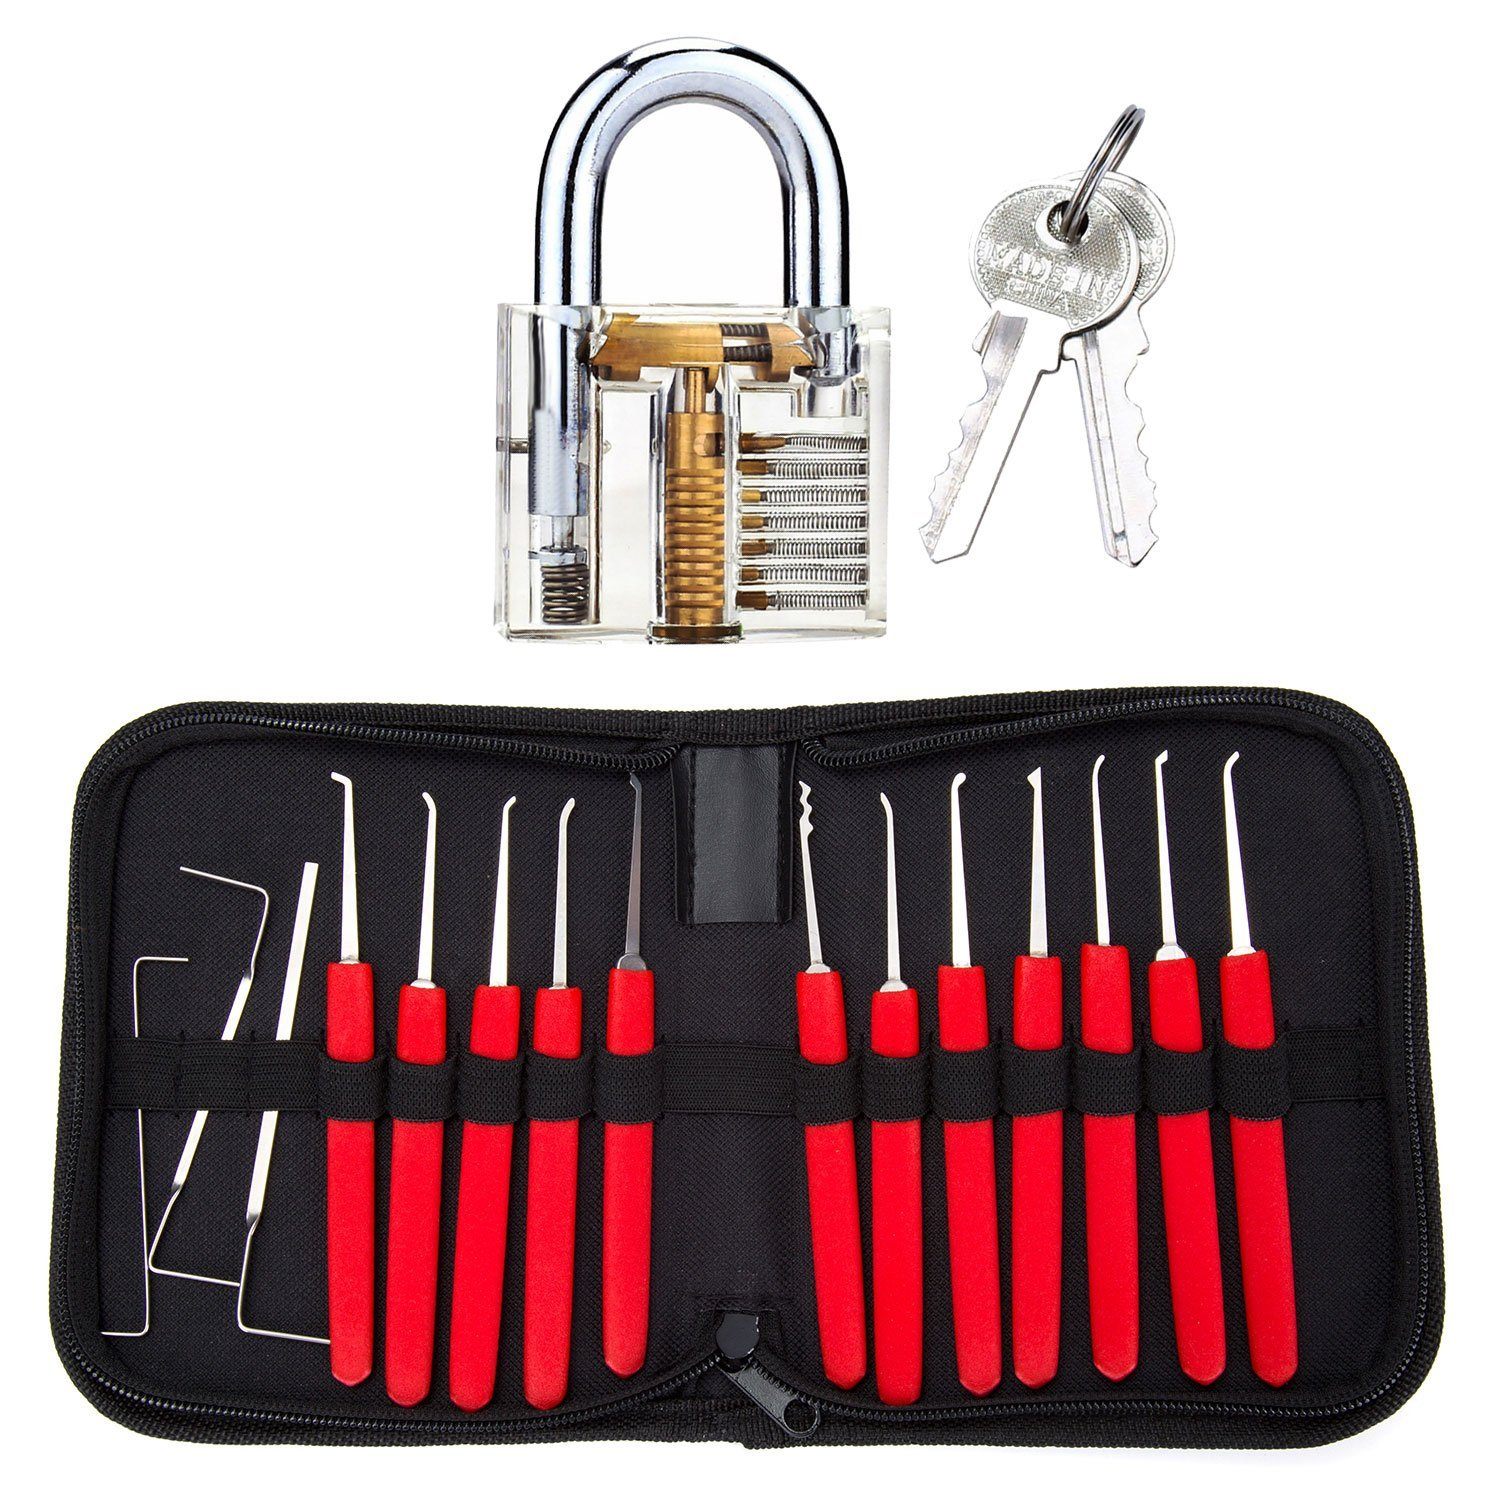 f38cd29c9069 Cheap Padlock Picking, find Padlock Picking deals on line at Alibaba.com